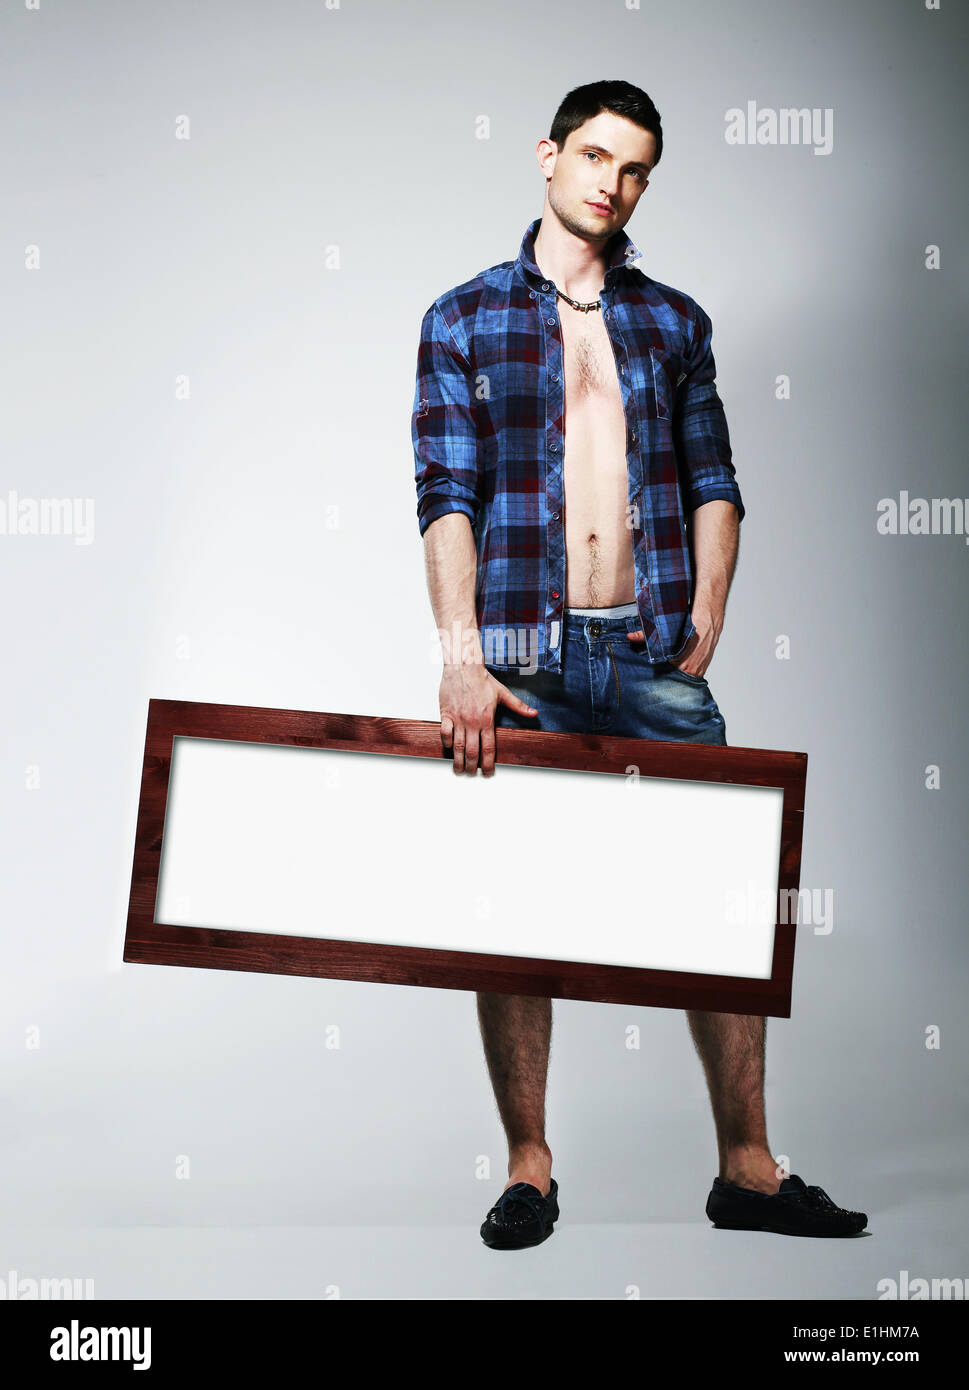 Young Man Showing Placard with White Blank Space - Stock Image